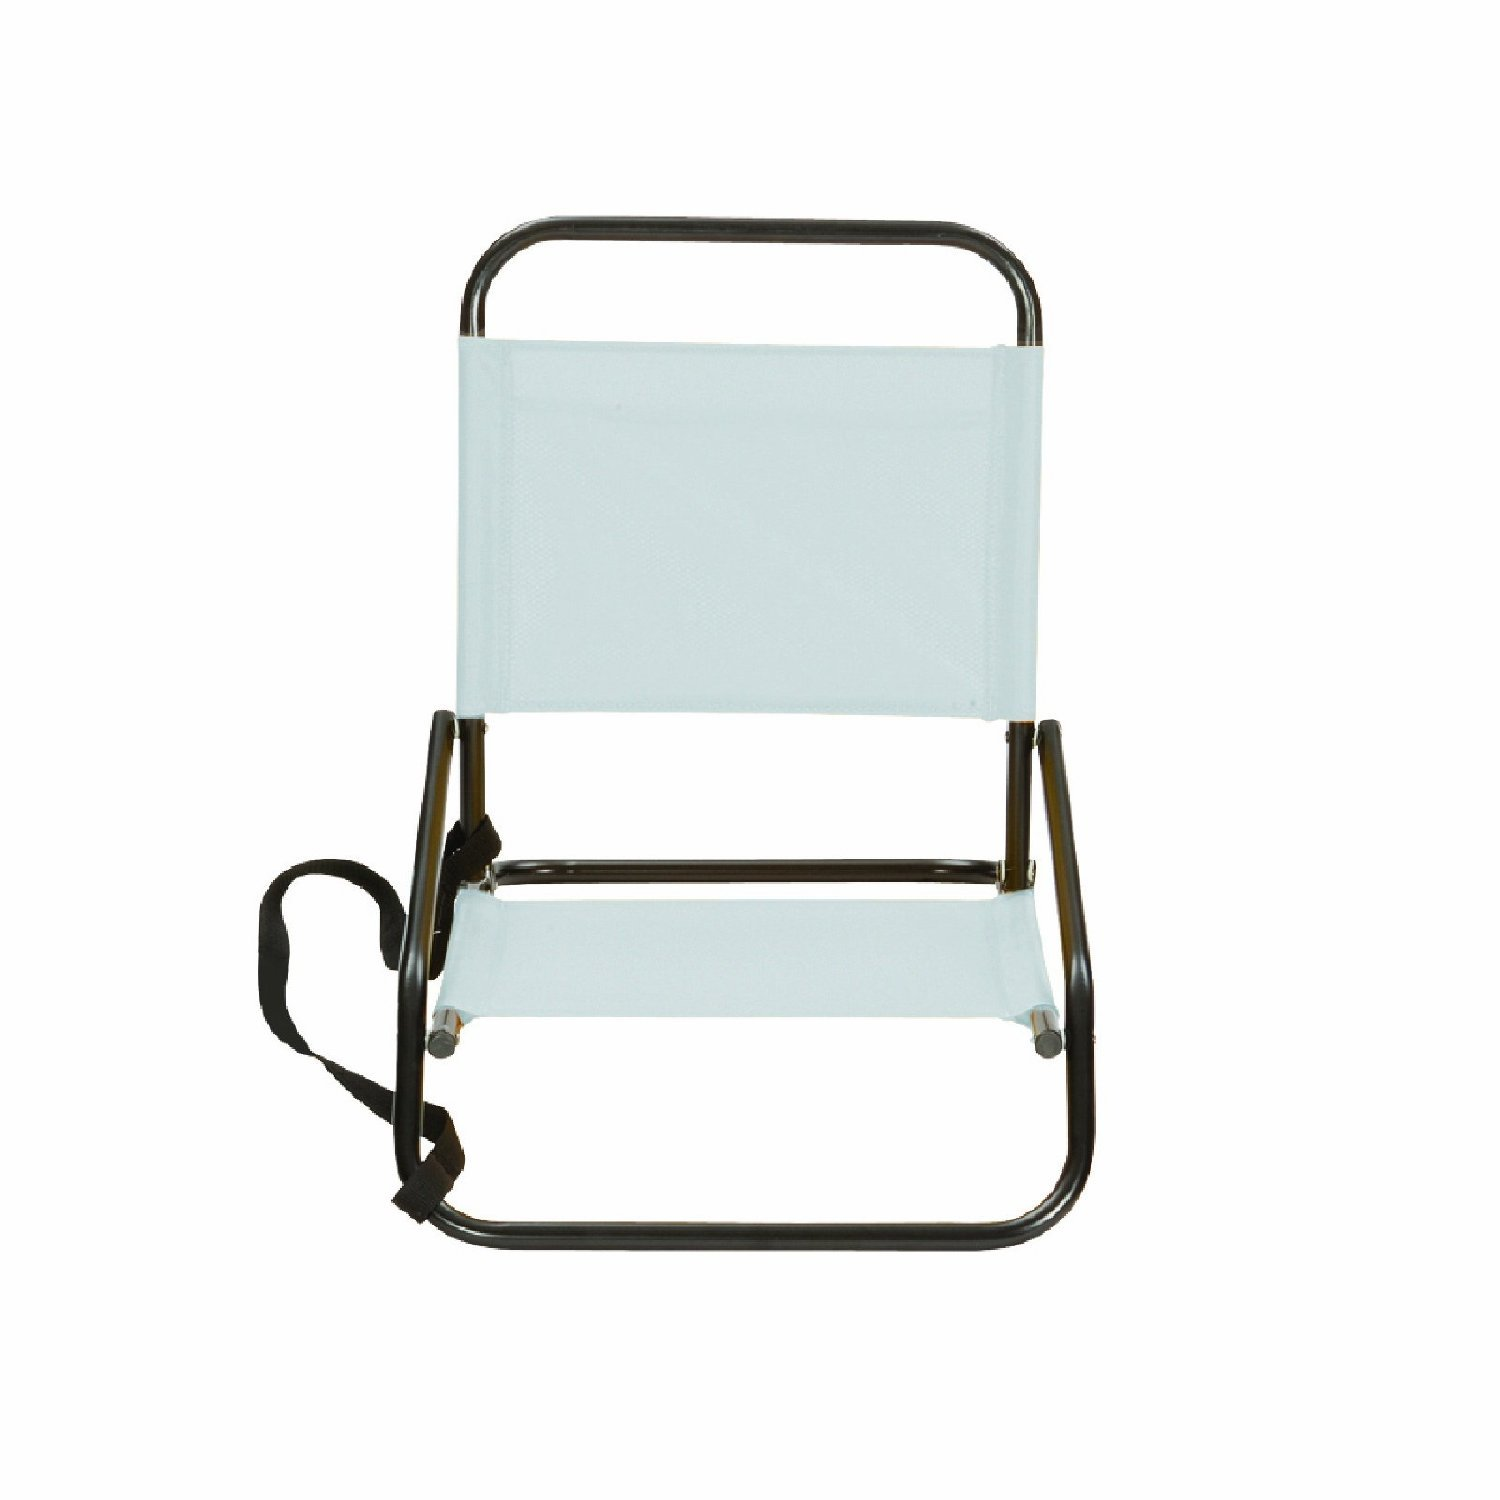 Stansport Sandpiper Sand Chair Gray